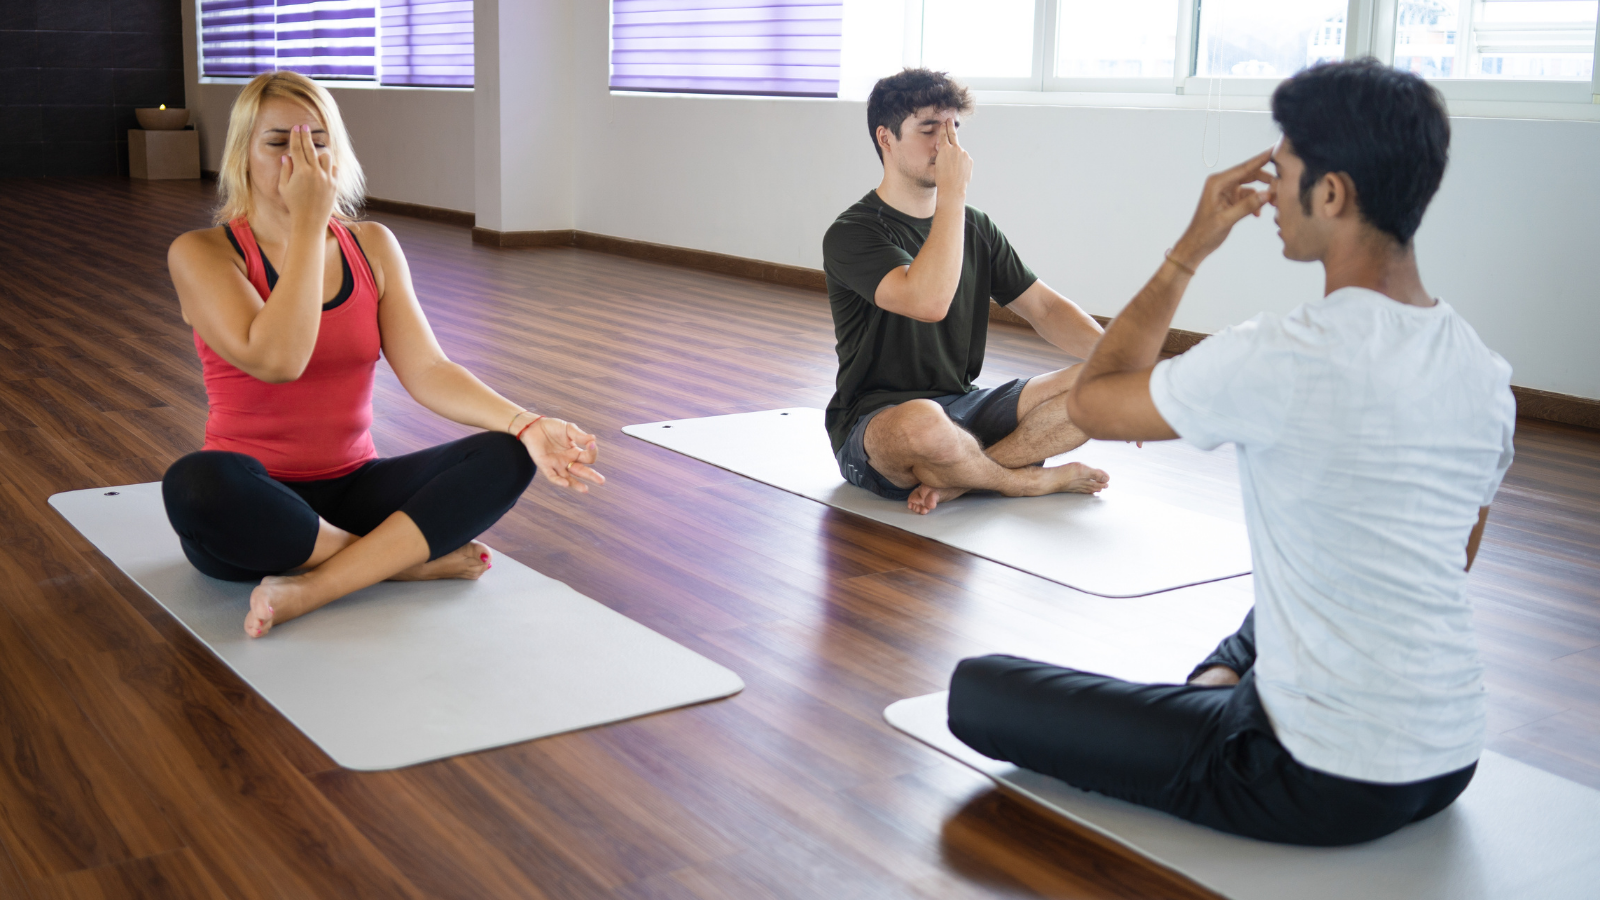 Students practicing breathing technique with instructor at yoga class which may help COVID patients improve breathing rates